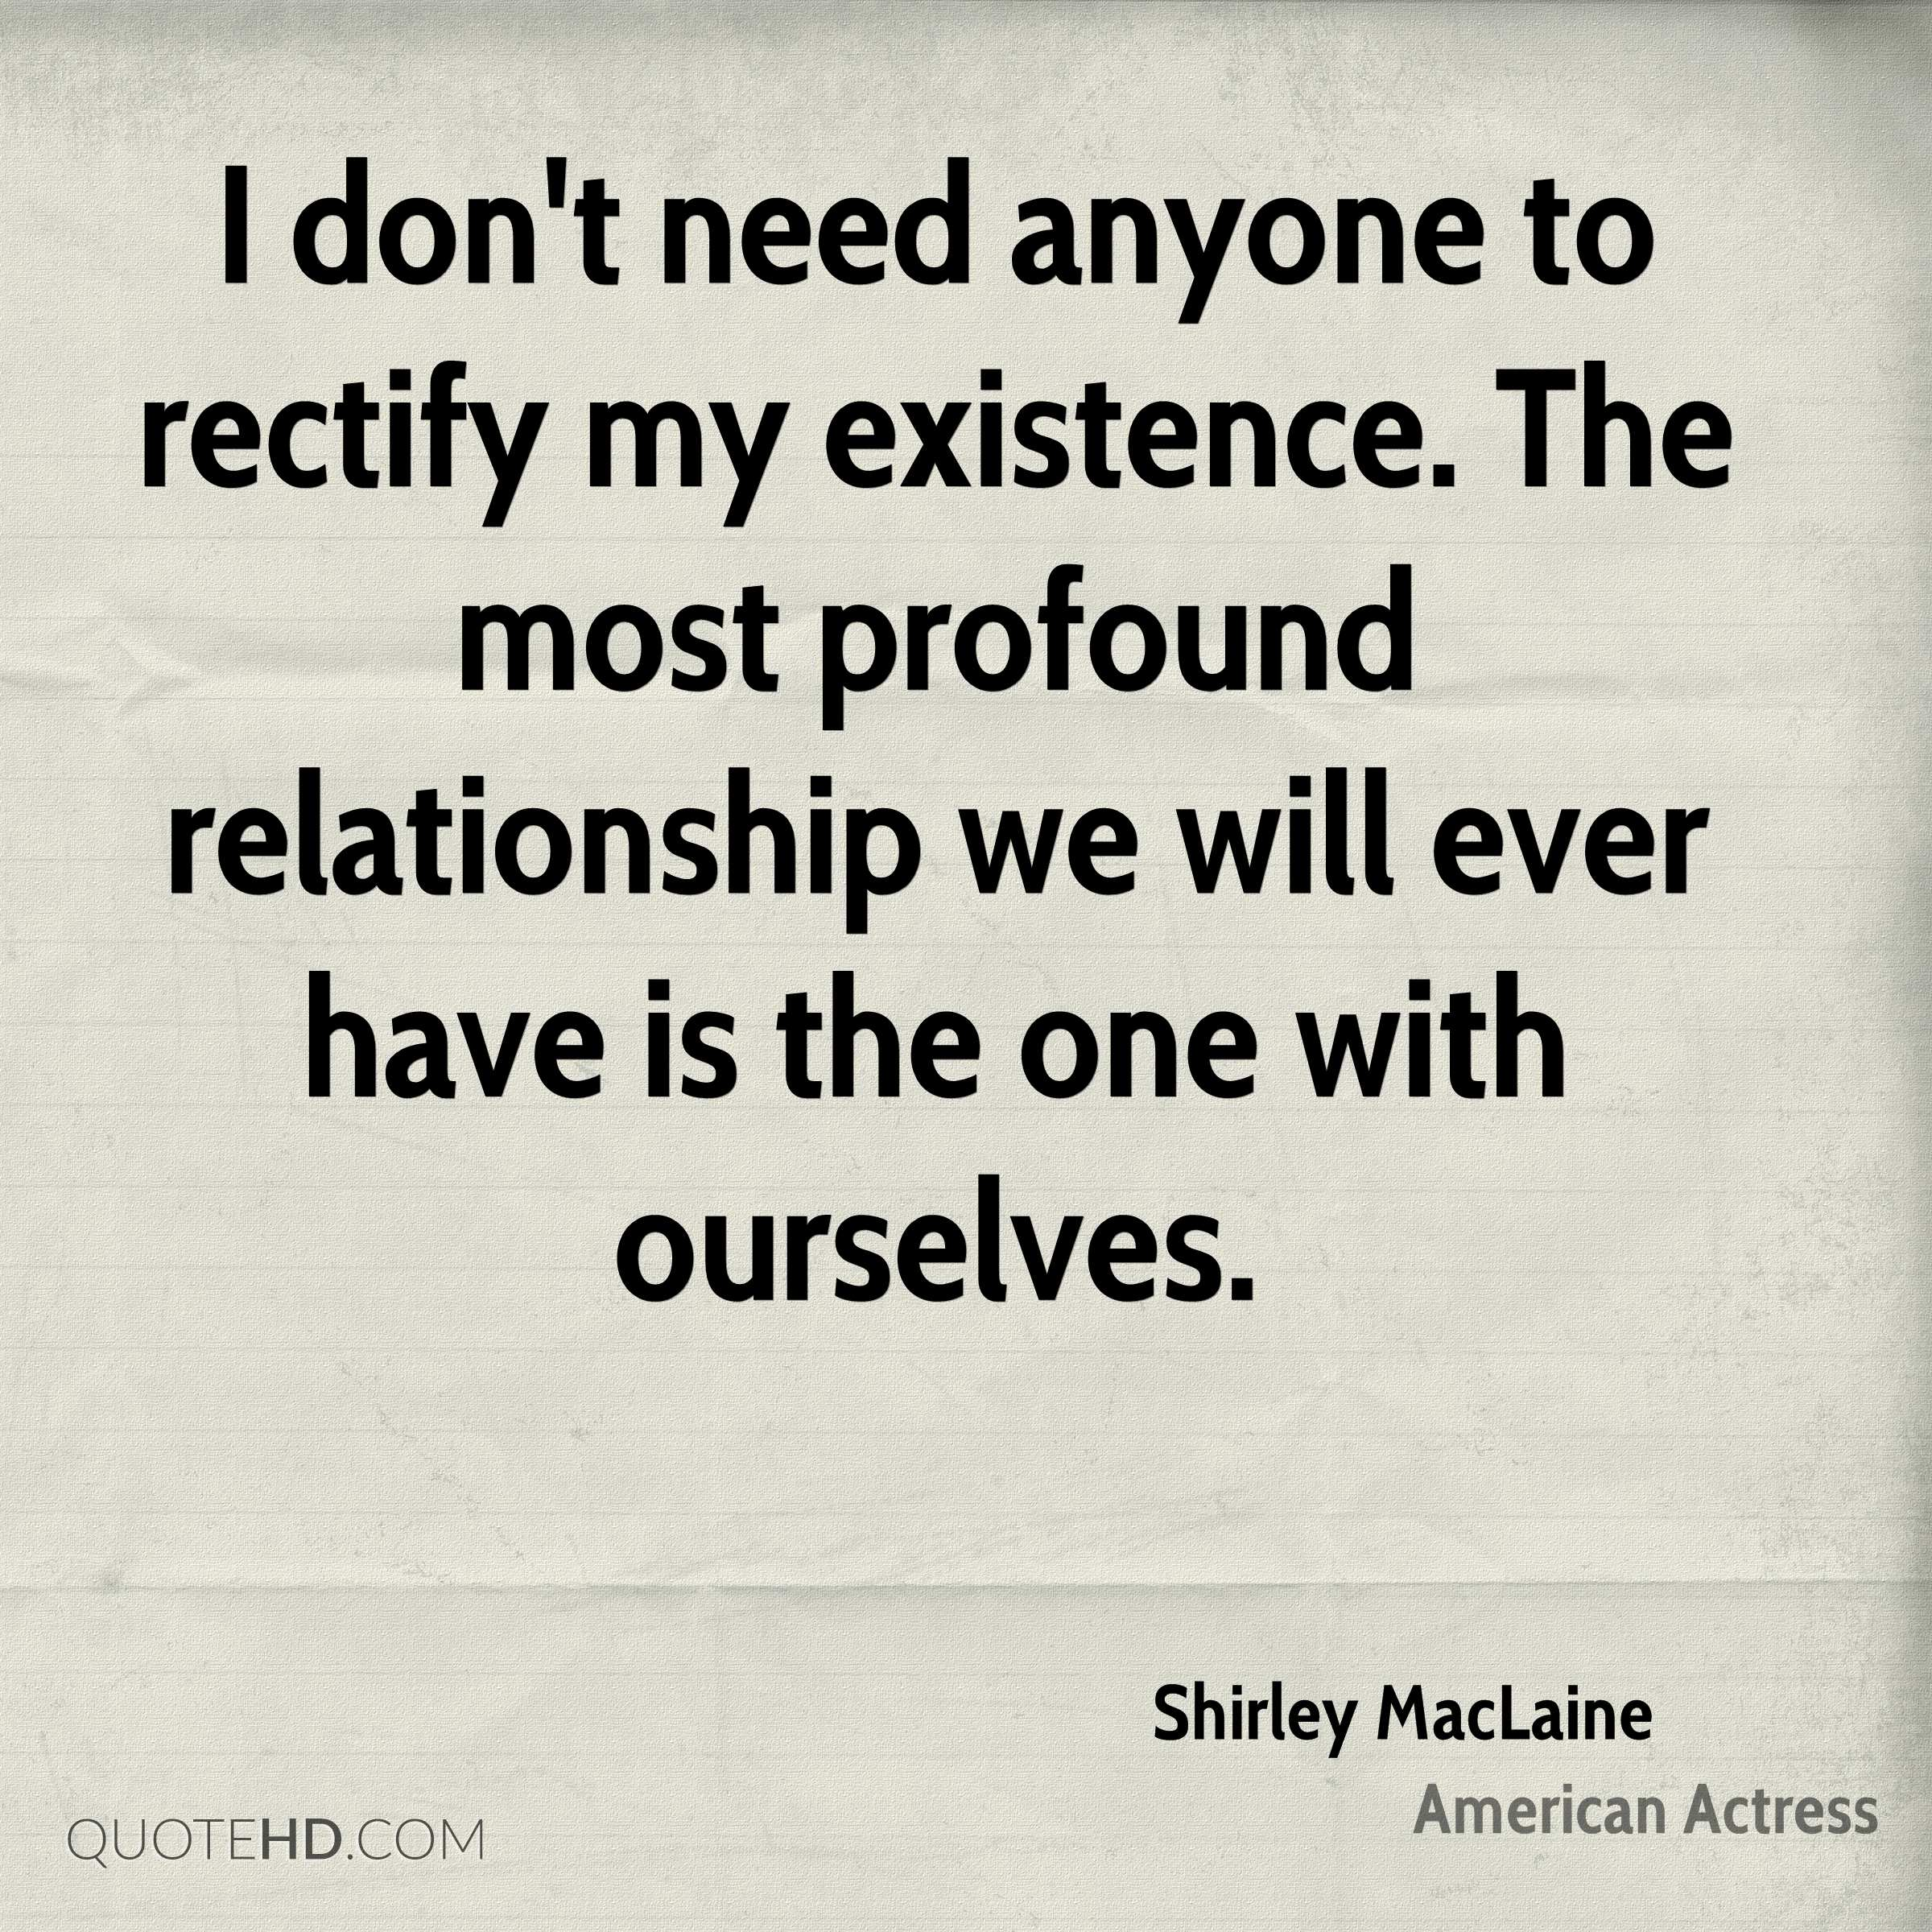 I don't need anyone to rectify my existence. The most profound relationship we will ever have is the one with ourselves.